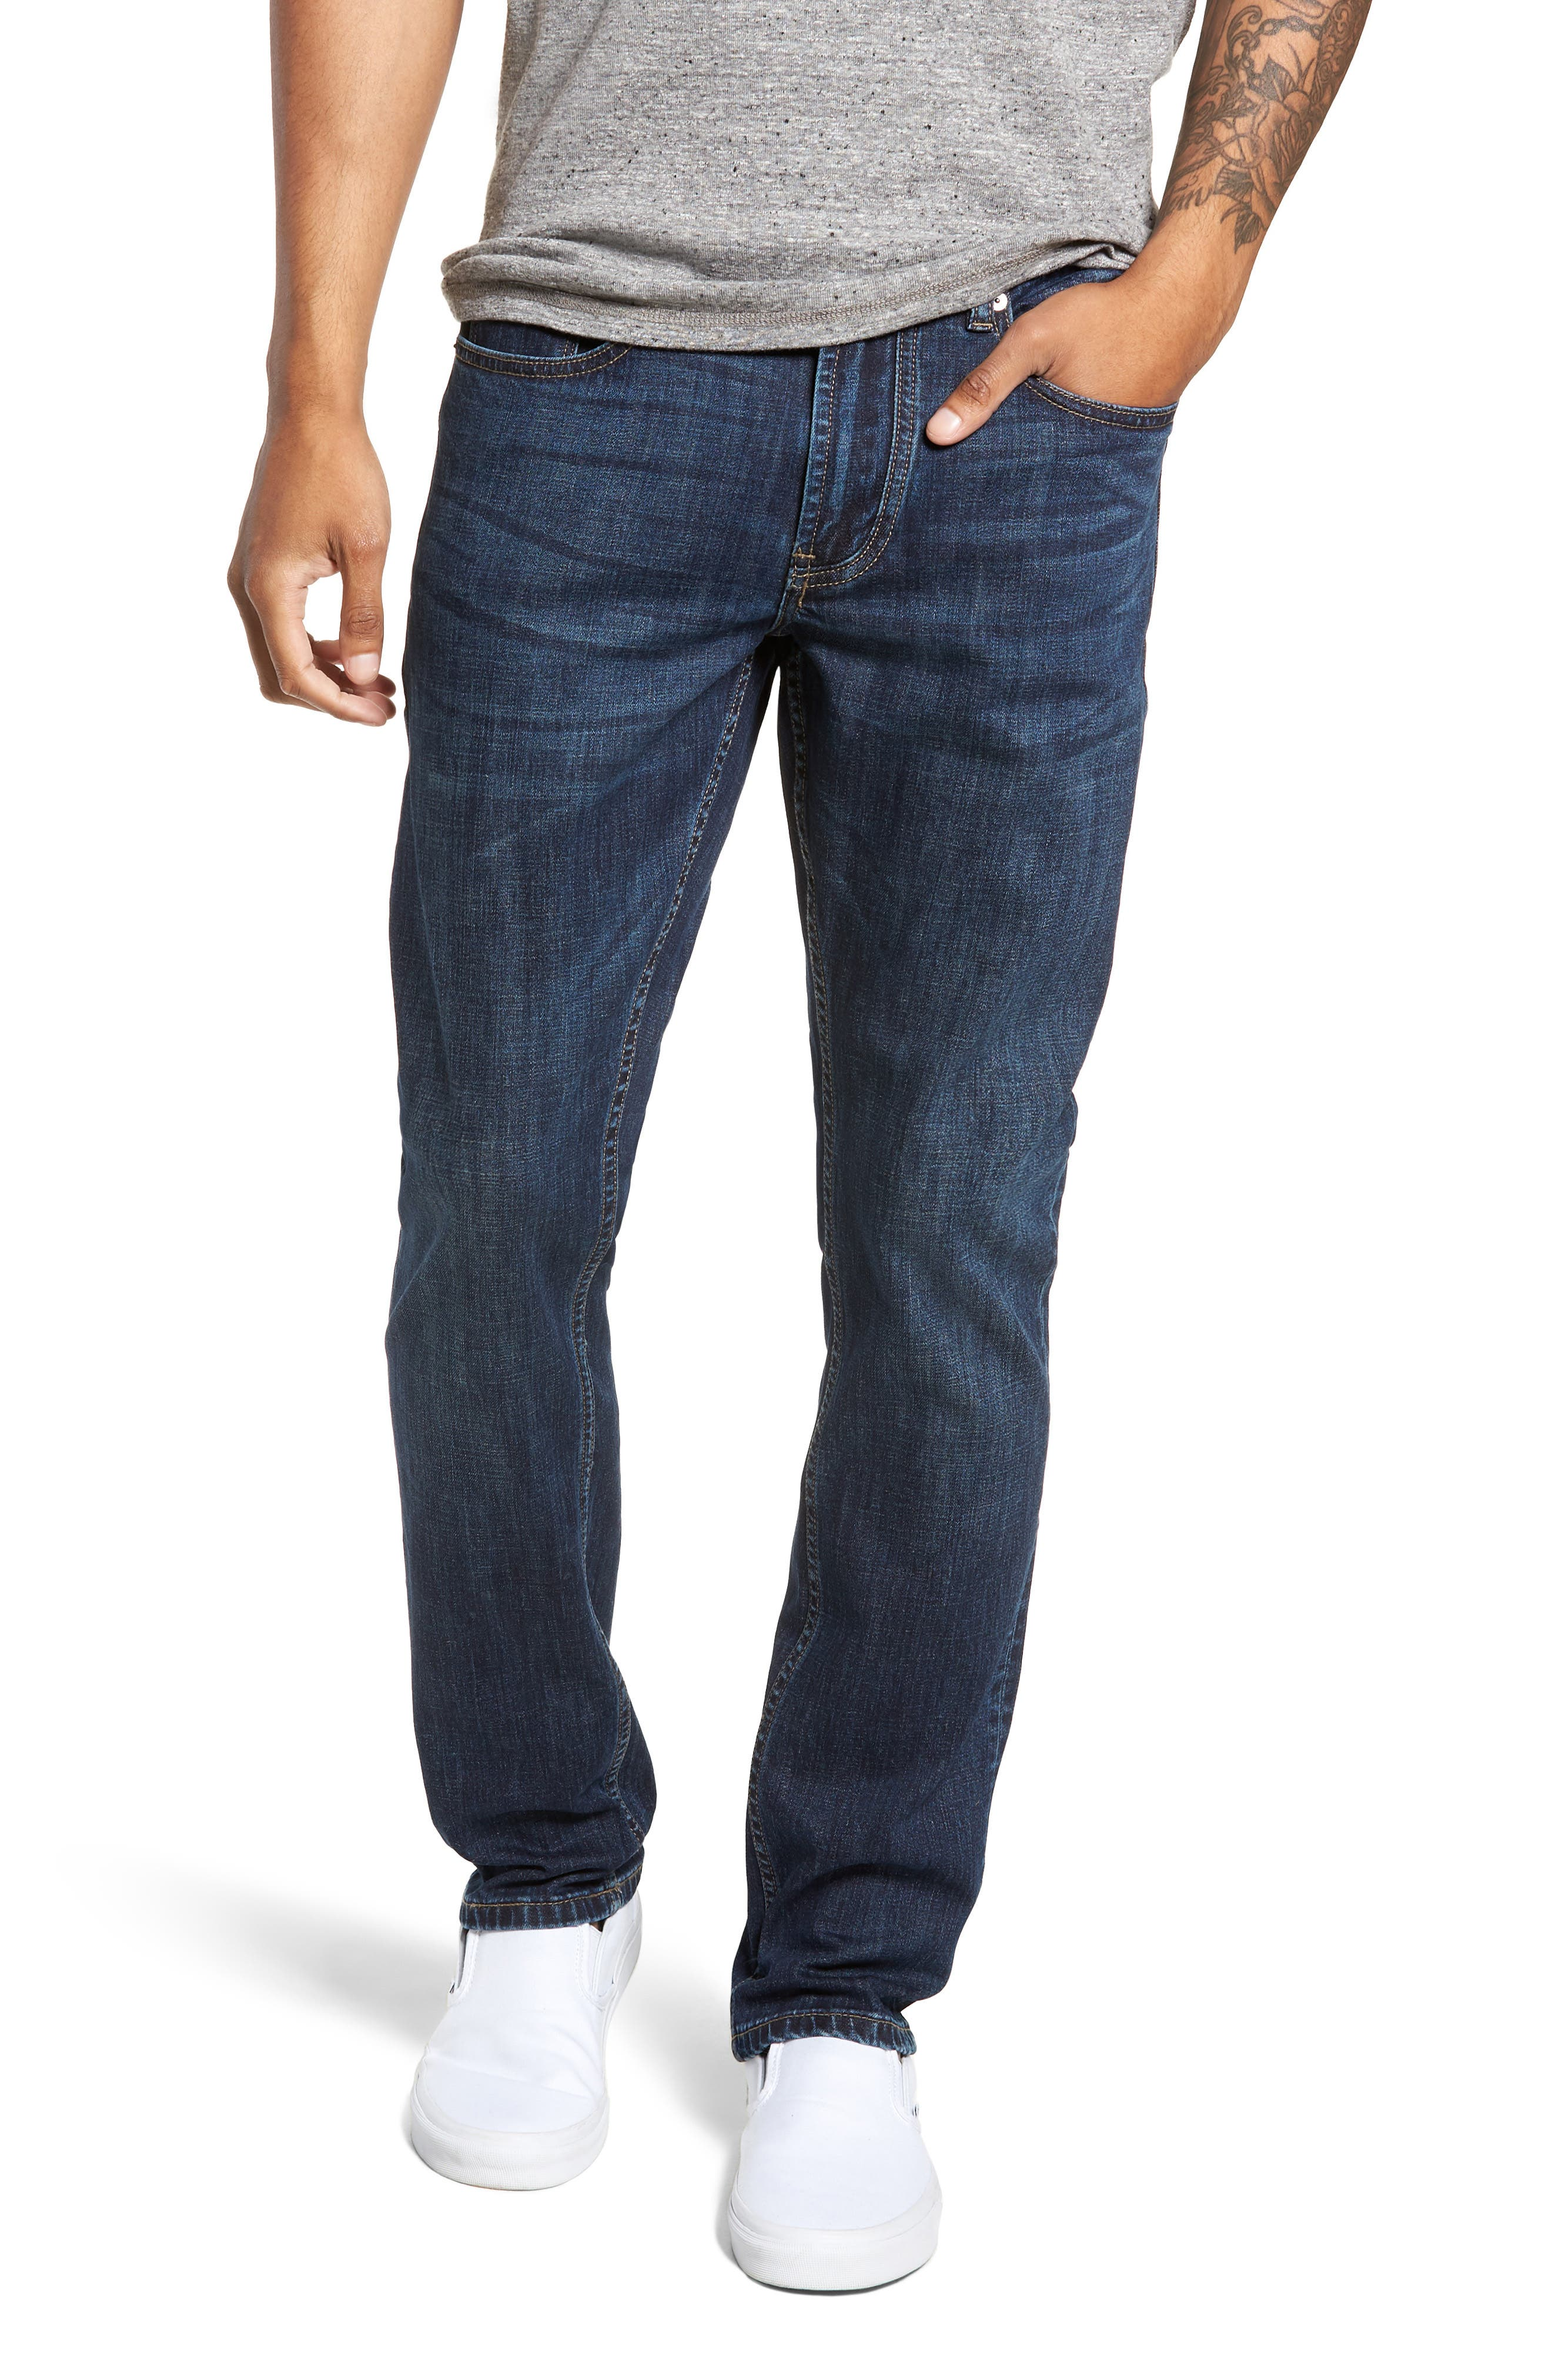 Wooster Slim Fit Jeans,                         Main,                         color, THROTTLE THRUST